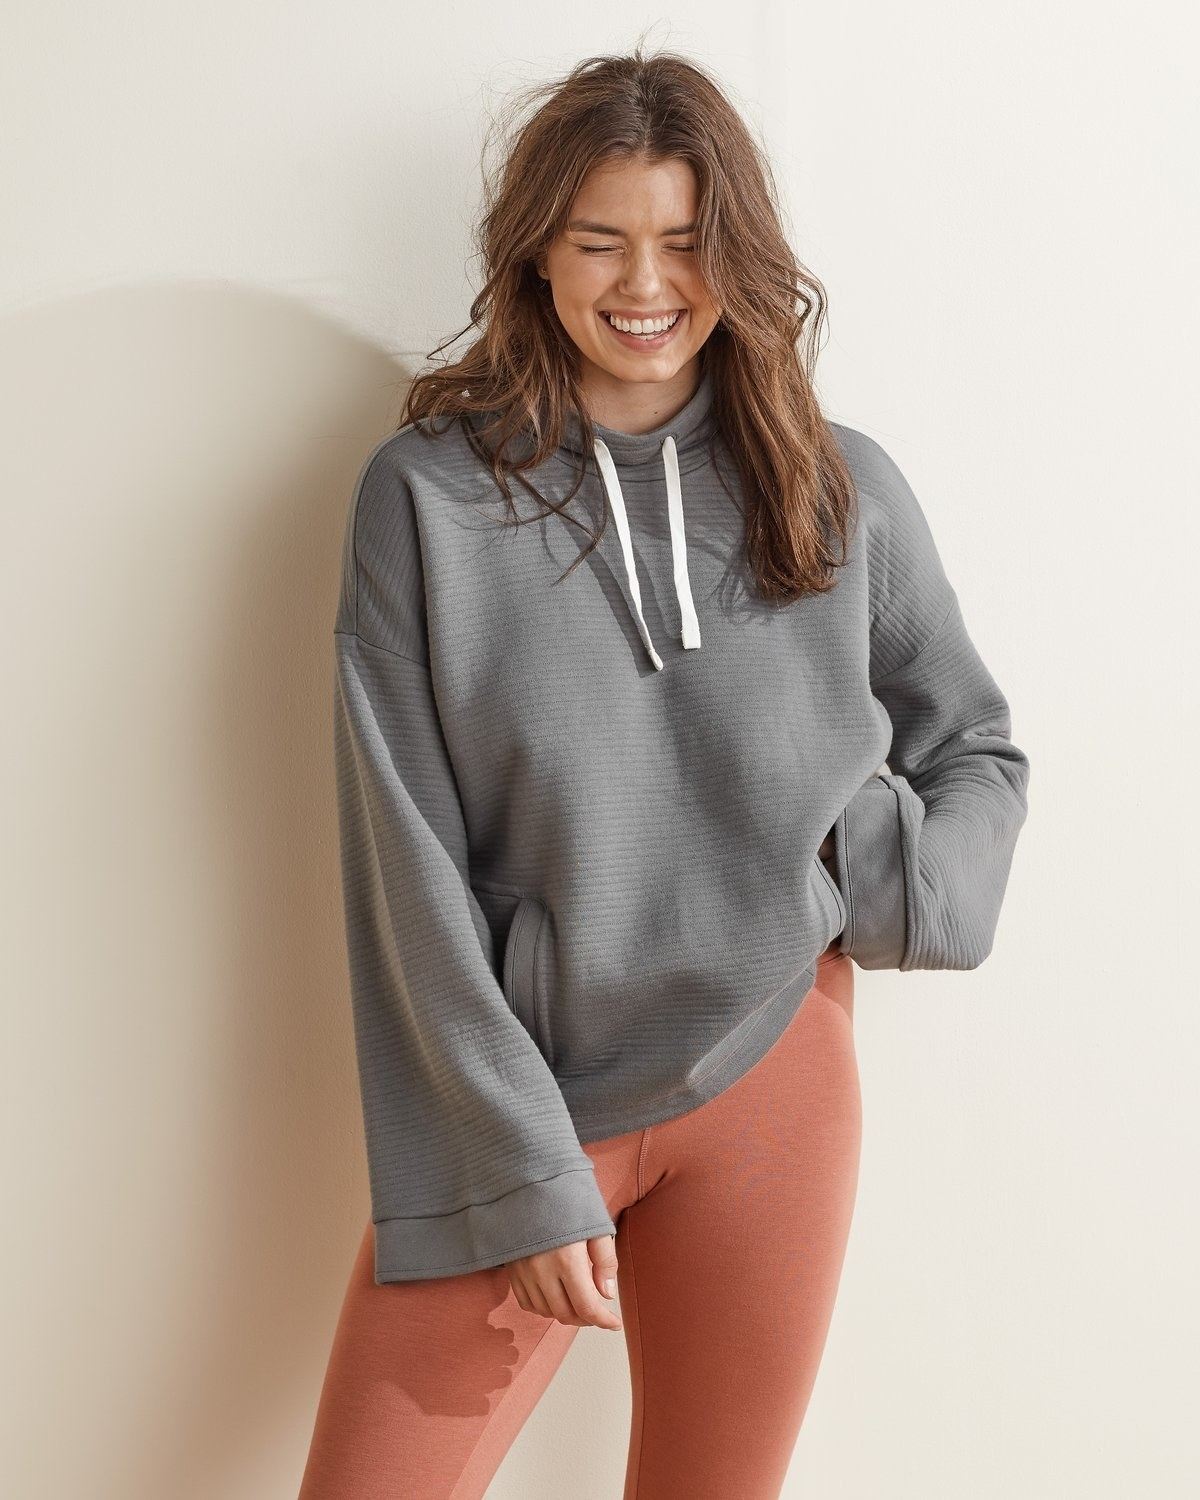 model wearing the gray hoodie with the white drawstring